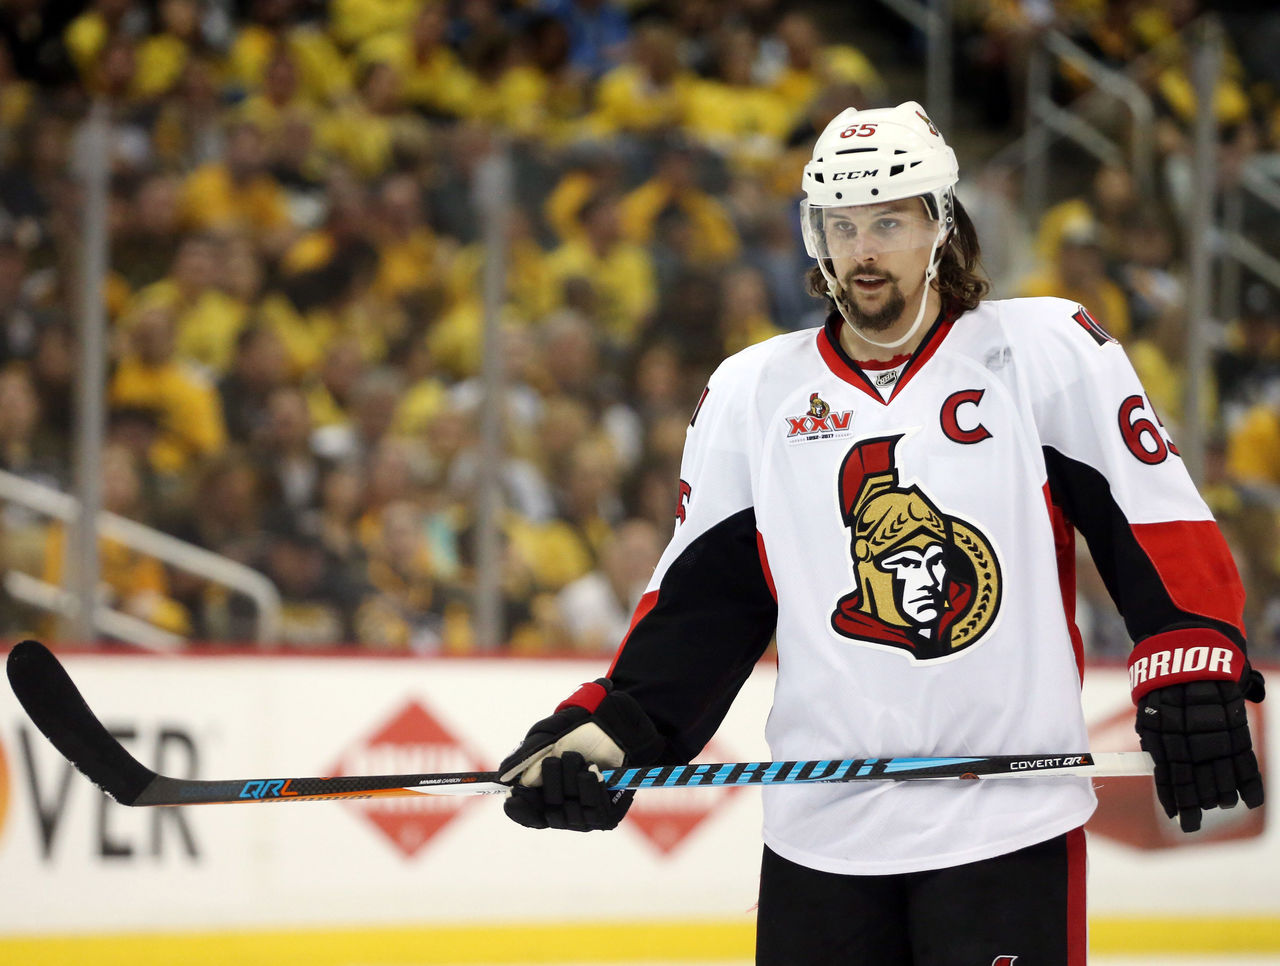 Cropped 2017 05 16t034953z 1663534514 nocid rtrmadp 3 nhl stanley cup playoffs ottawa senators at pittsburgh penguins